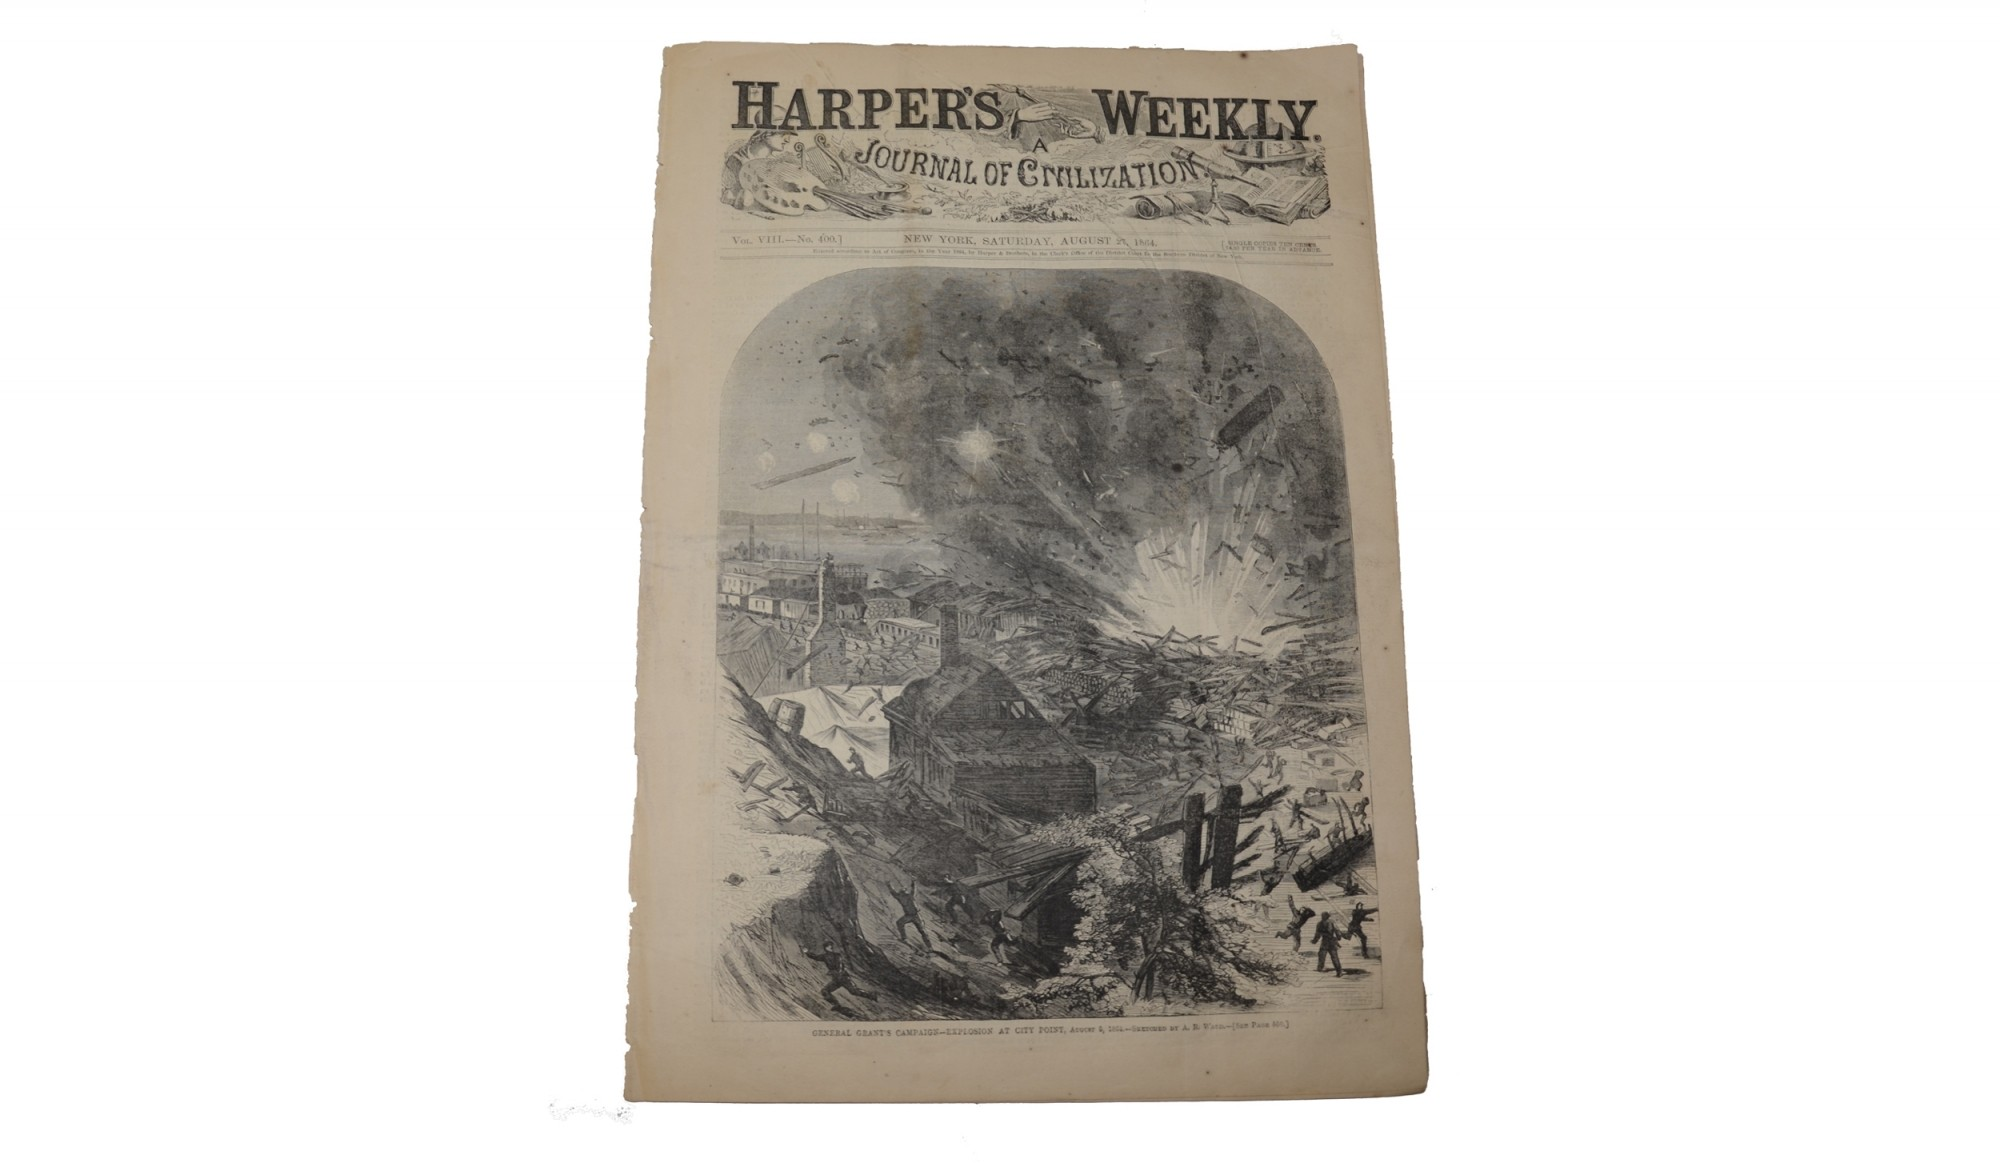 HARPER'S WEEKLY DATED AUGUST 2, 1864 – GENERAL GRANT / CITY POINT